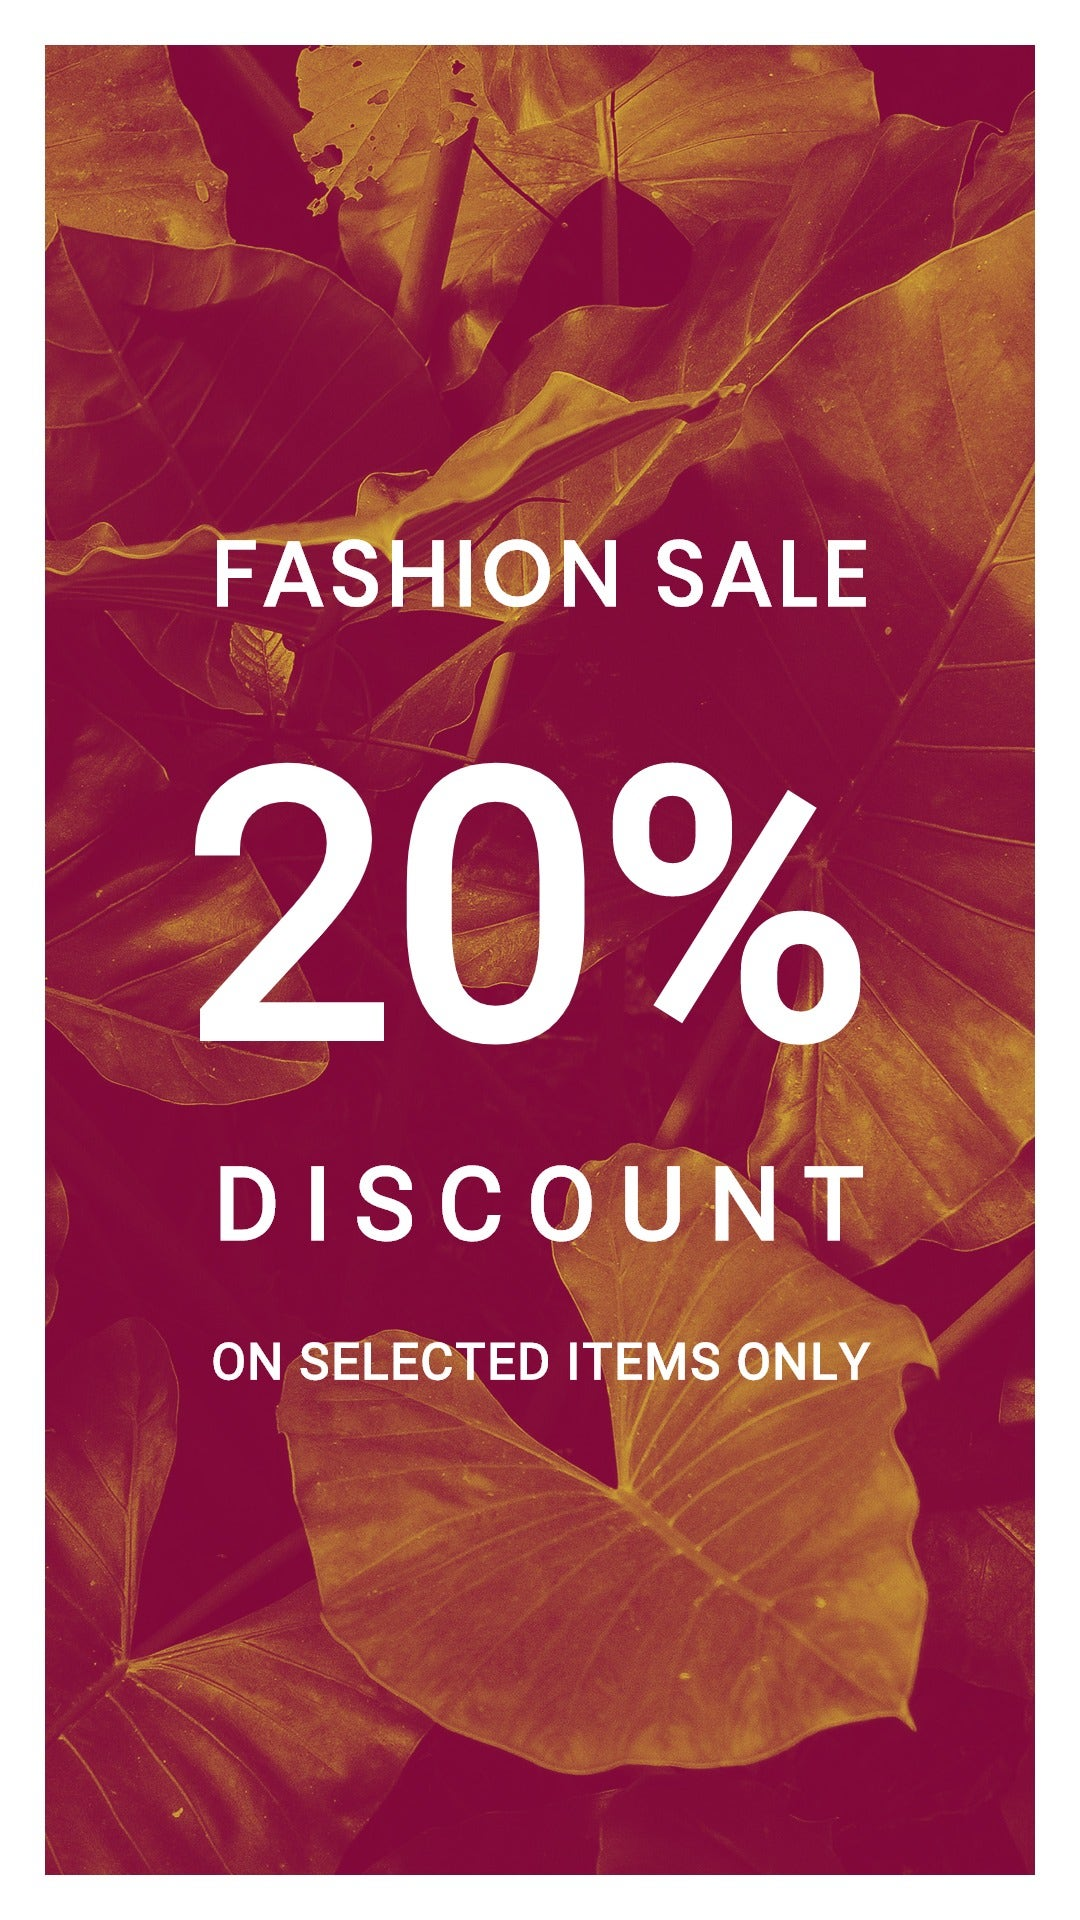 Editable Fashion Sale Whatsapp Image Template